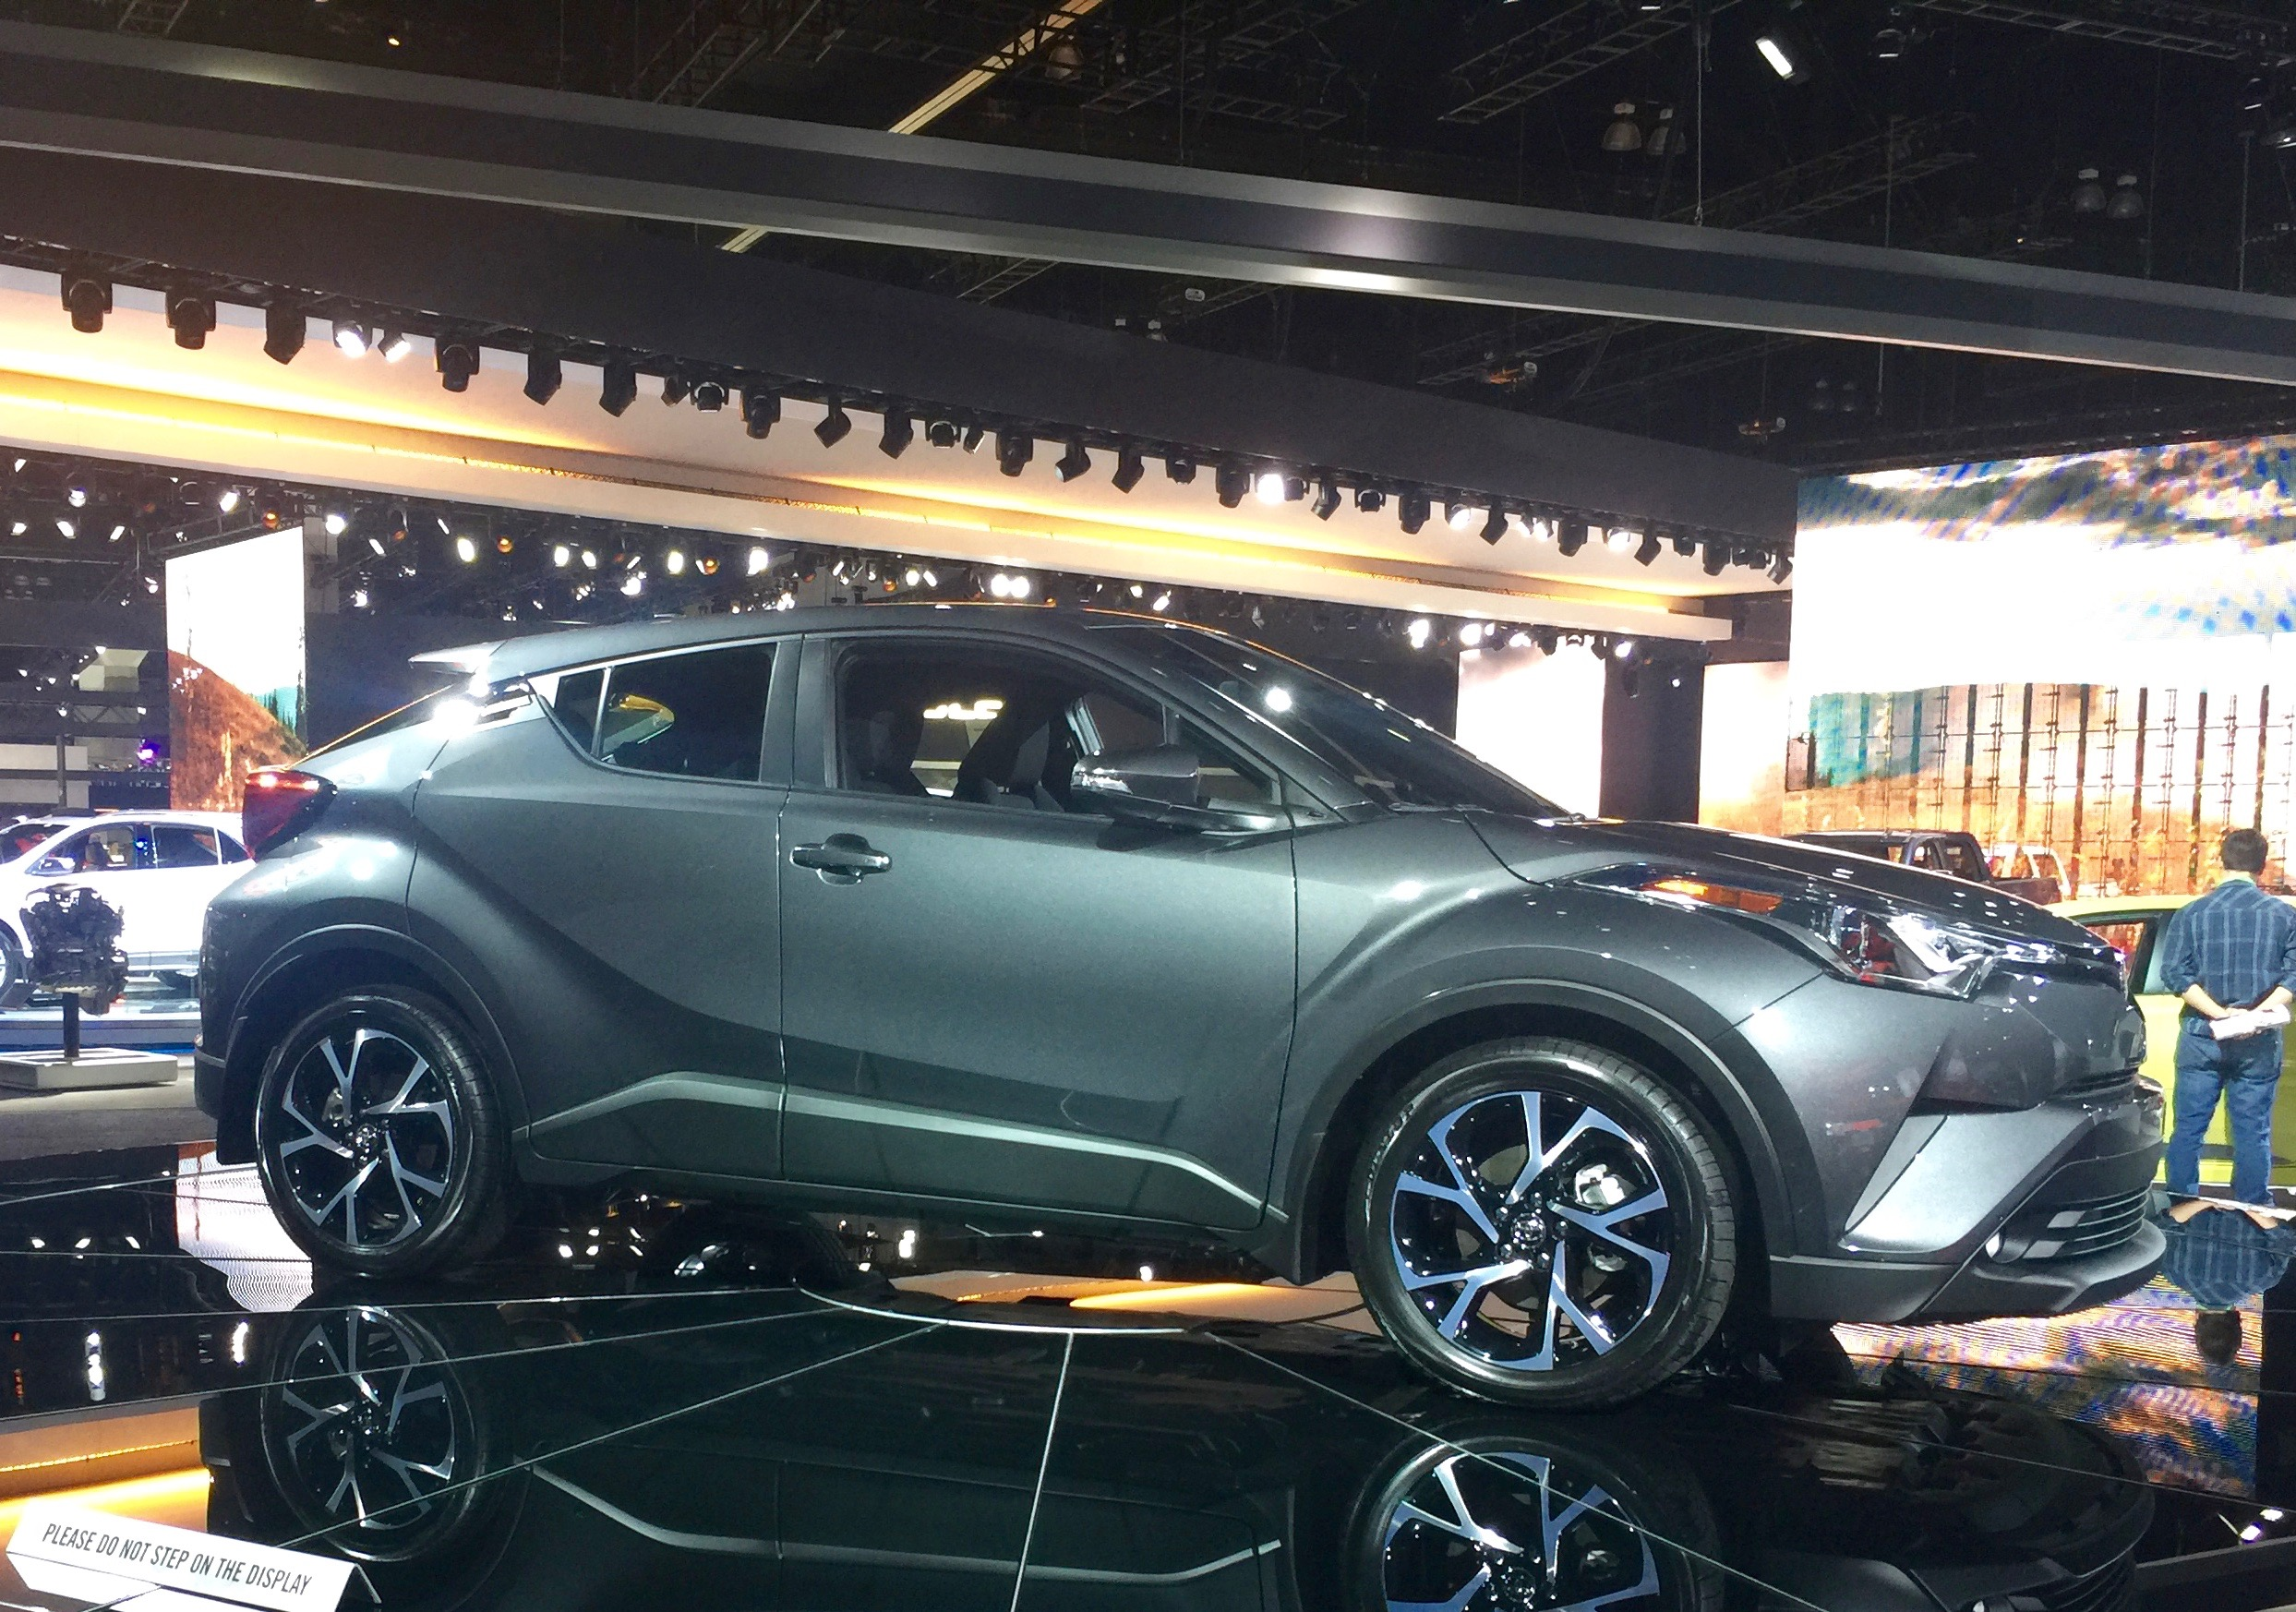 2017 la auto show report invasion of the millennial mobile vroomgirls. Black Bedroom Furniture Sets. Home Design Ideas